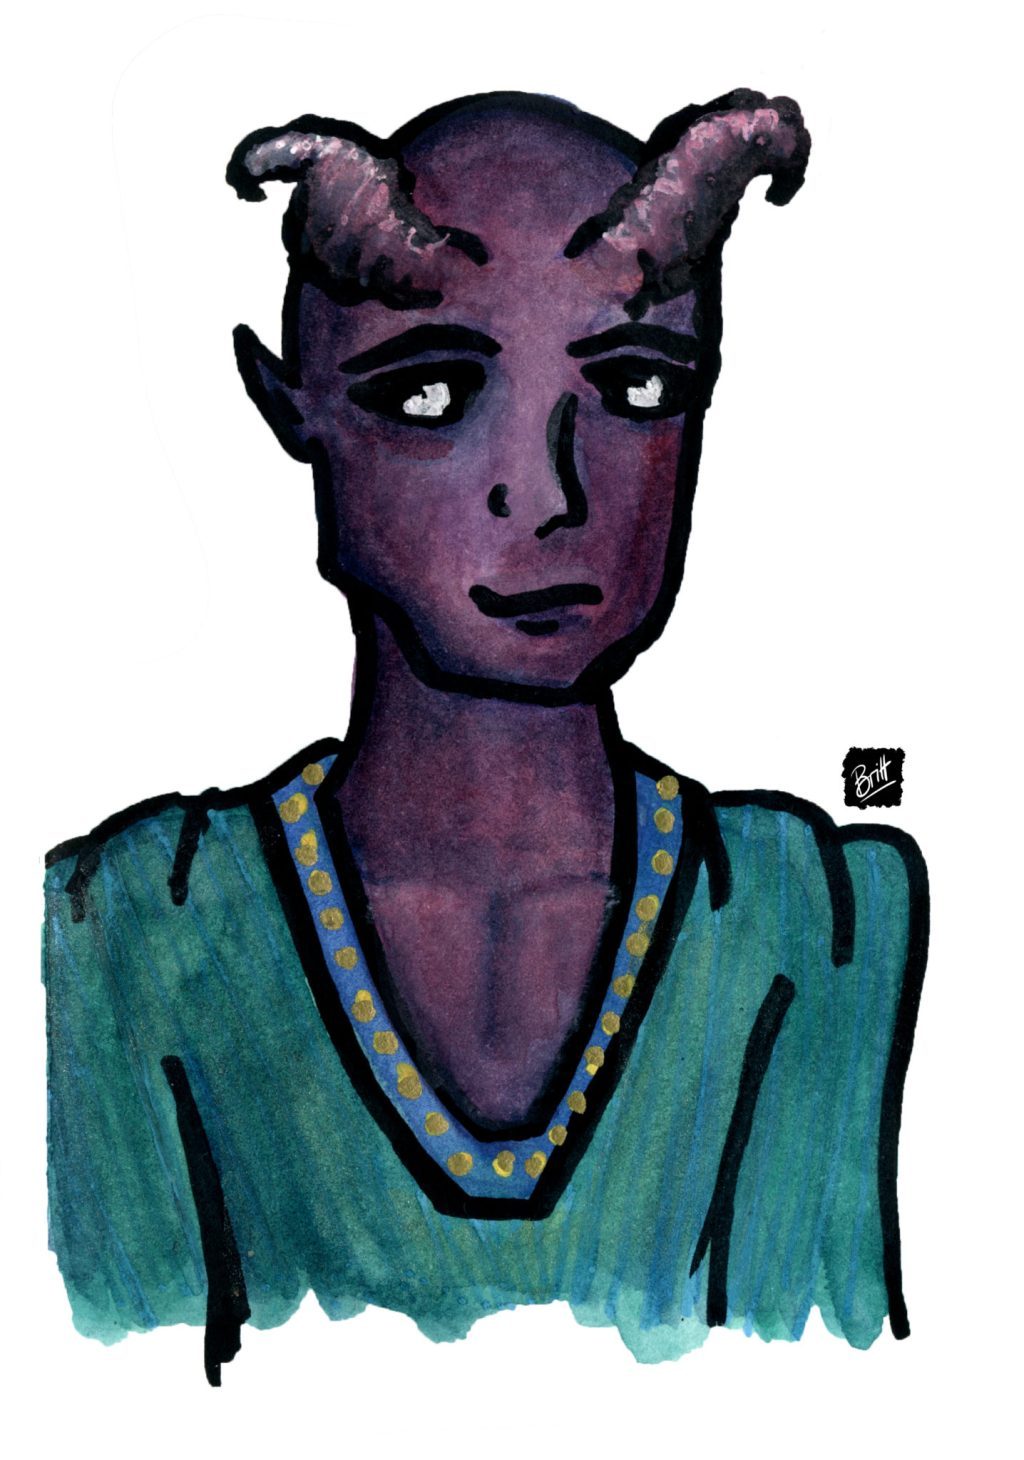 Baron Whitehorn, a character from my D&D campaign, a tiefling with purple skin and horns wearing a light cotton shirt in green.